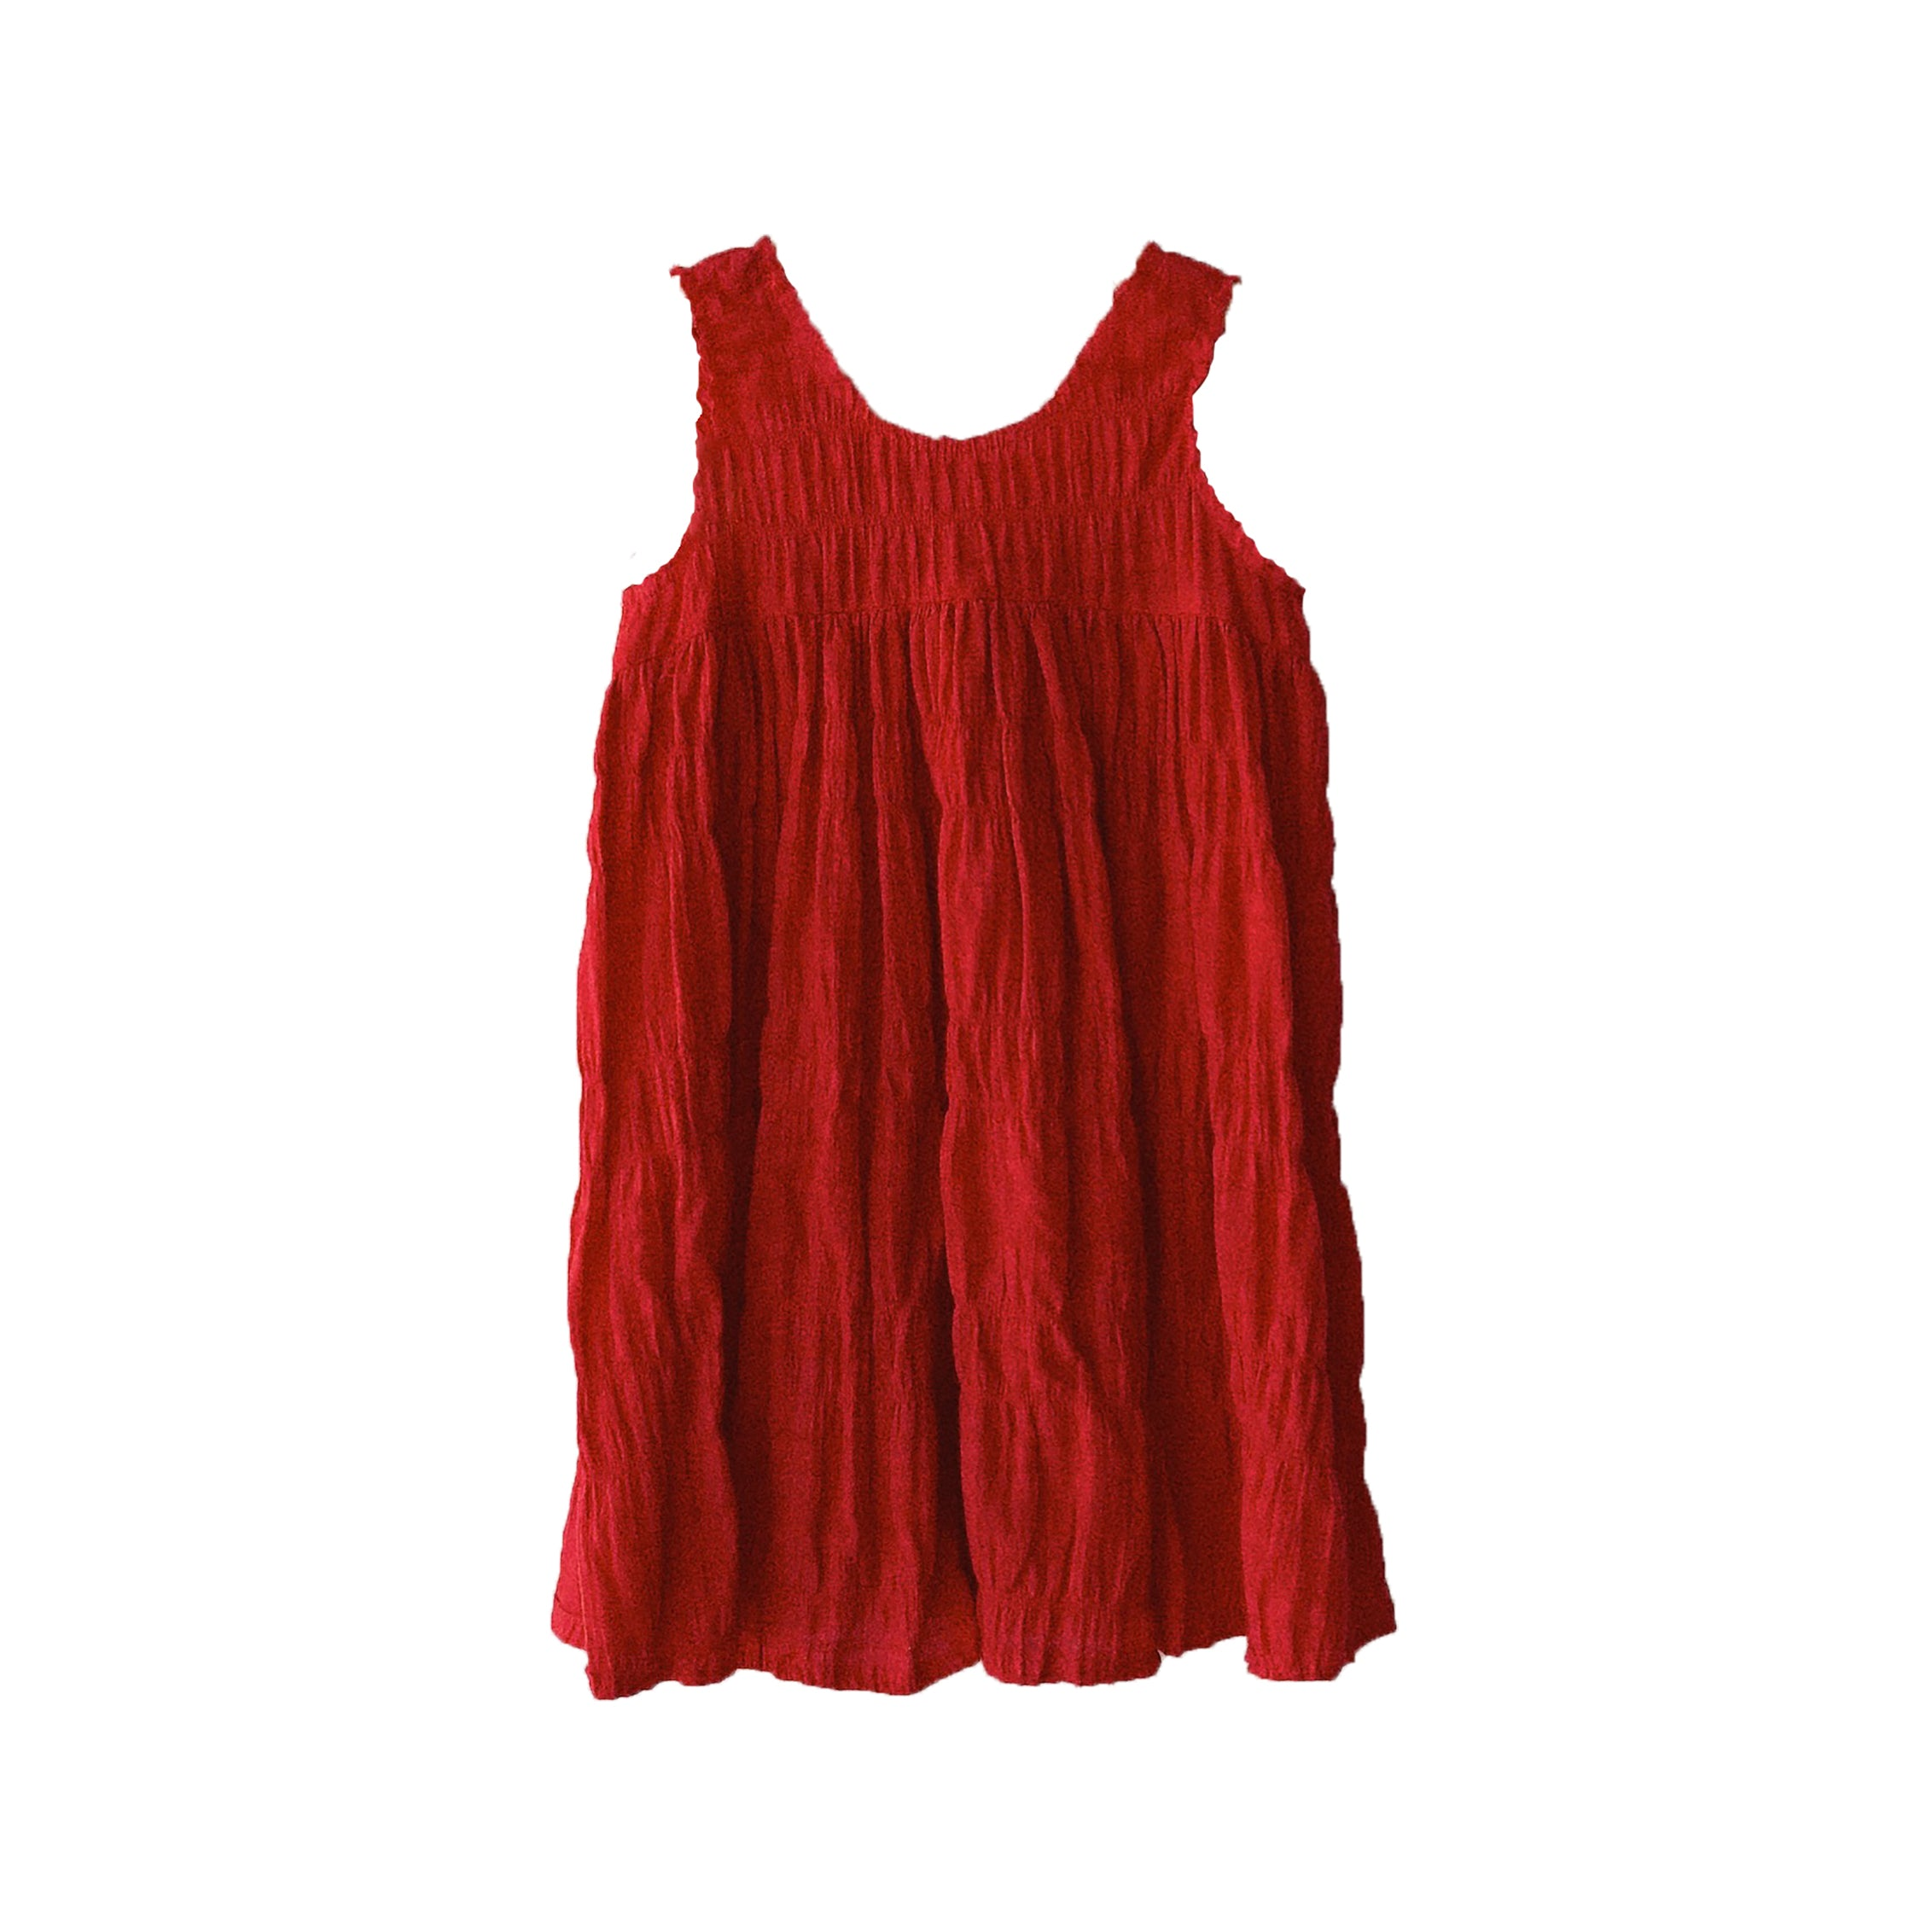 Boy+Girl Frankie Kid's Dress Apple Red Crinkled Cotton | BIEN BIEN www.bienbienshop.com